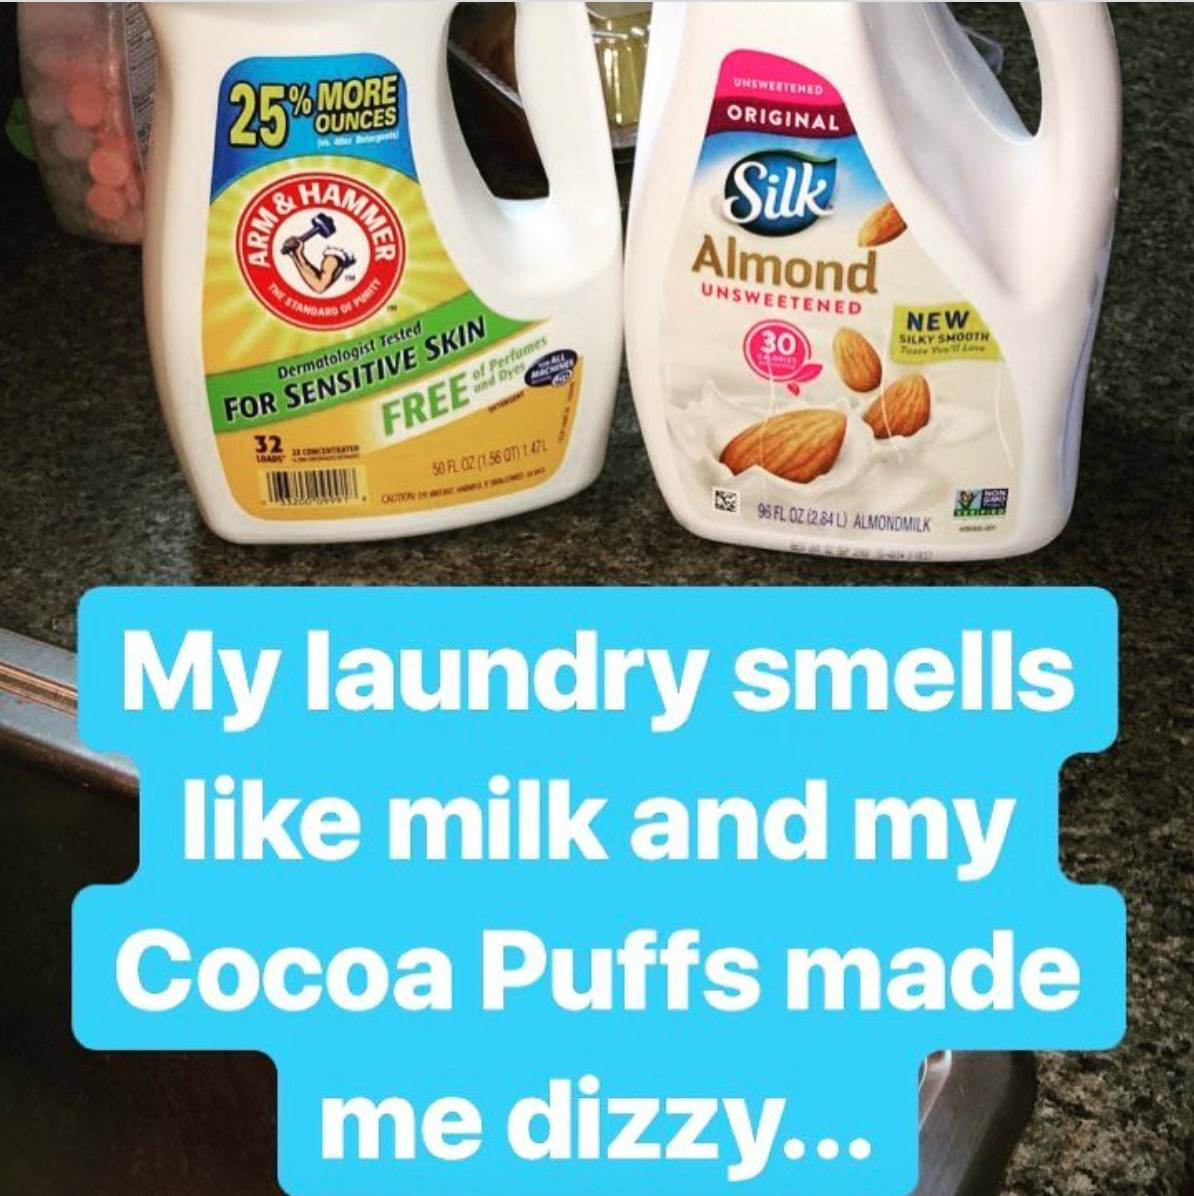 laundry detergent container next to gallon of almond milk with caption (my laundry smells like milk and my coca puffs made me dizzy)